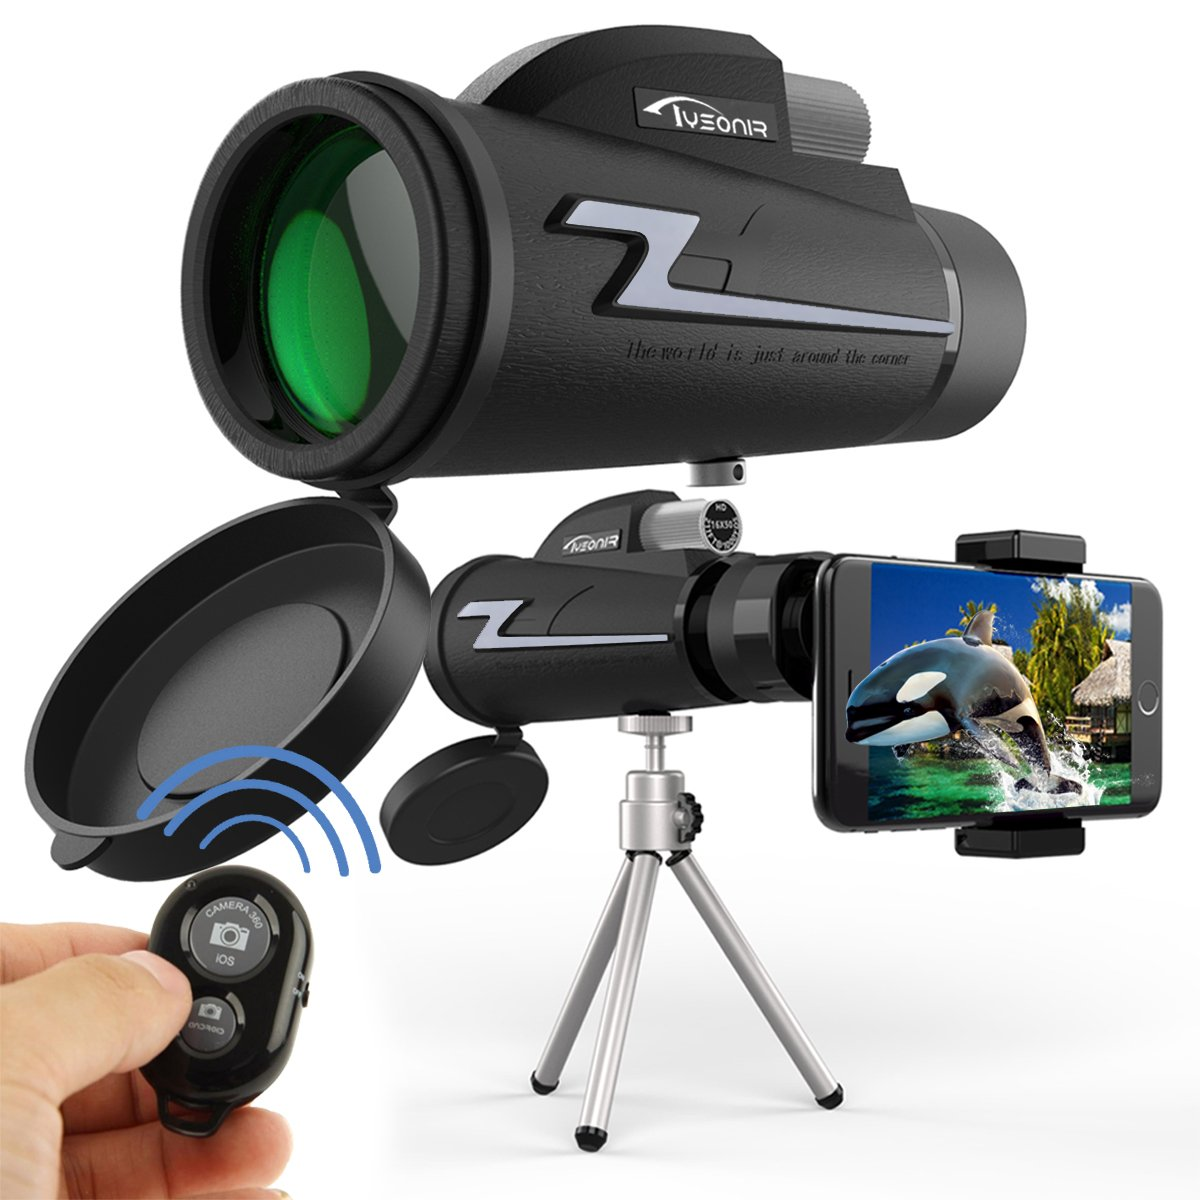 Monocular Telescope, Waterproof 16x50 High Power BAK4 Prism FMC Lens with Tripod Camera Remote Control and Quick Smartphone Holder for Travel,Concert,Sports, etc. by Tysonir